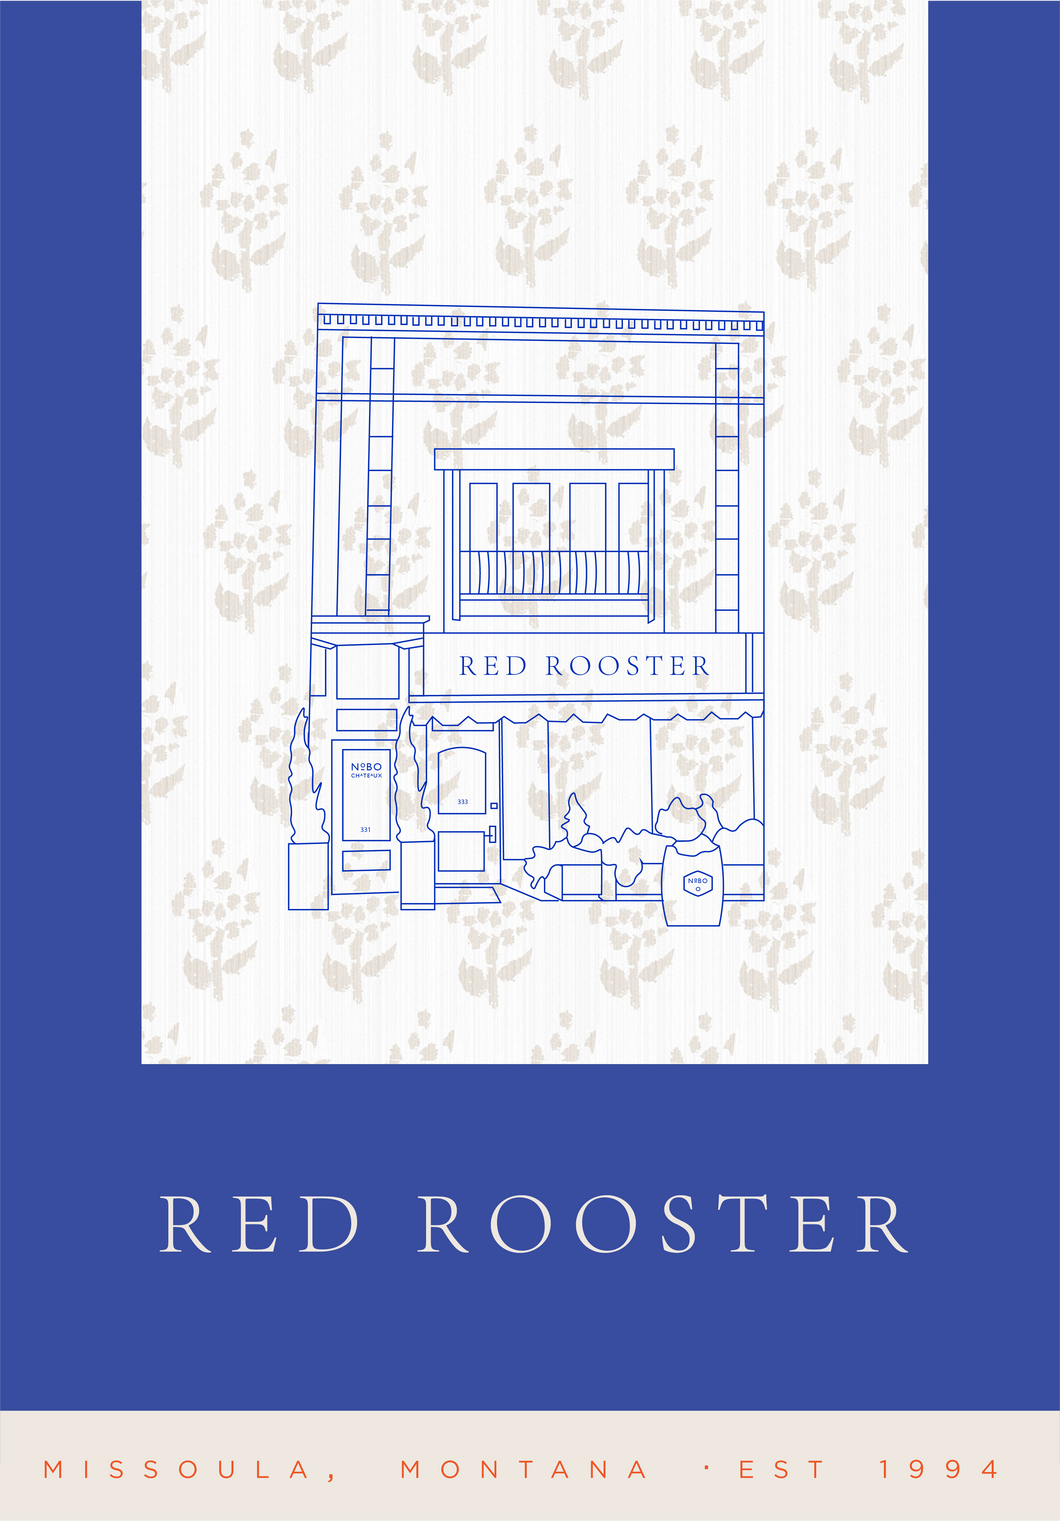 Red Rooster $50.00 Gift Card